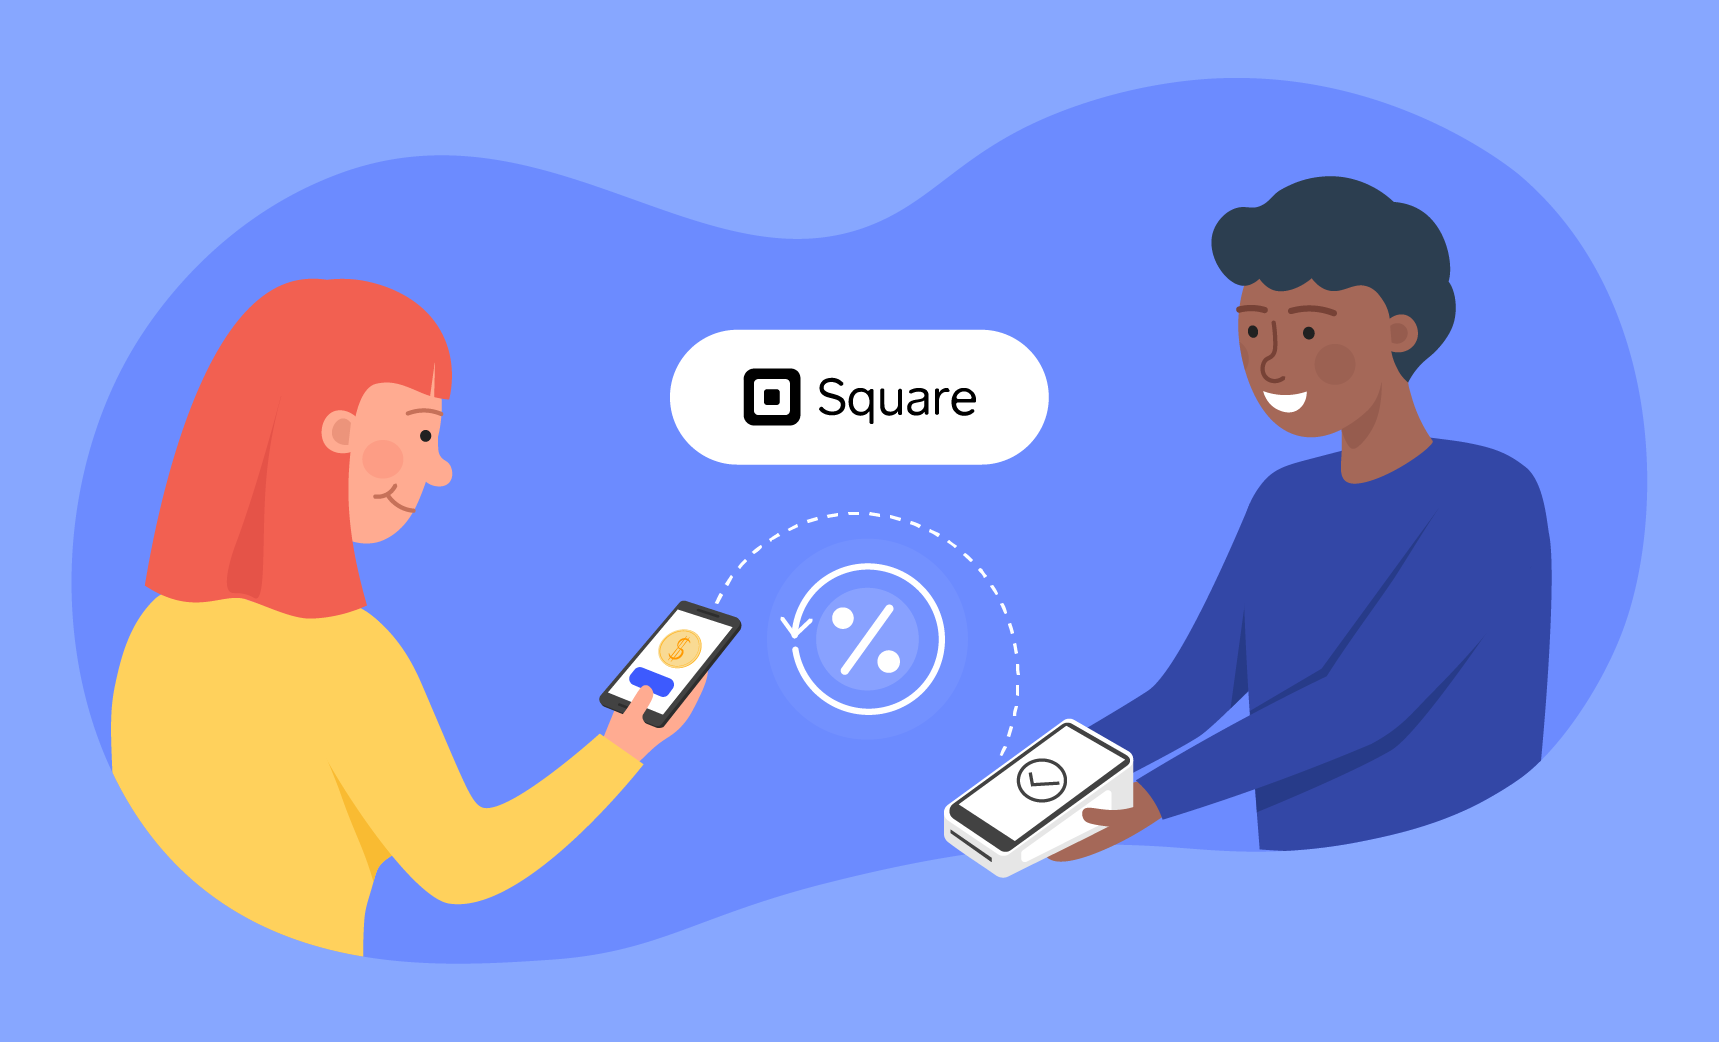 What are Square's transaction fees?